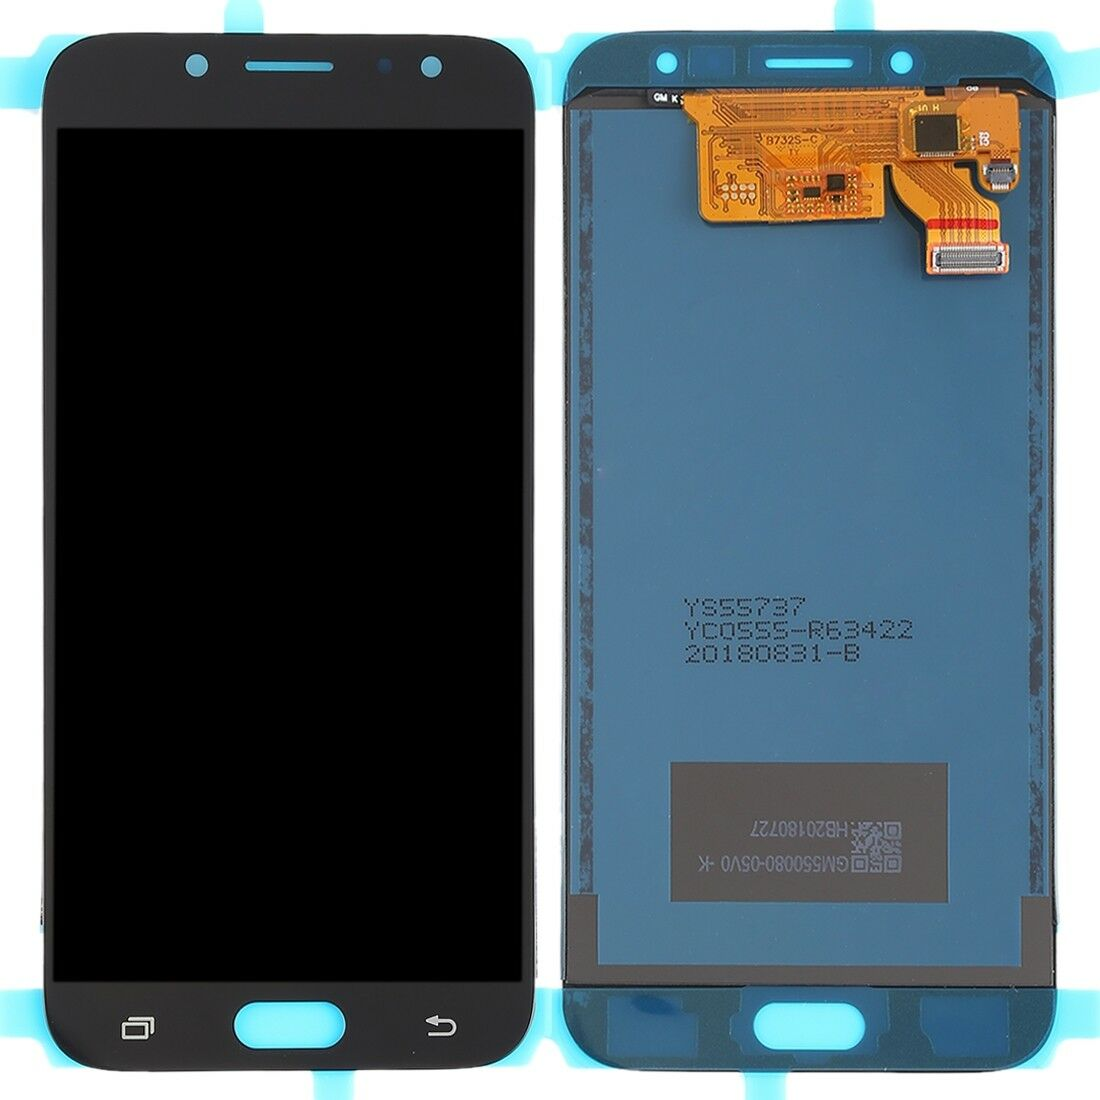 Touch screen lcd display samsung J7 2017 J730 SM-J730F SM-J730F/DS nero +kit smontaggio biadesivo gia' applicato e colla b7000